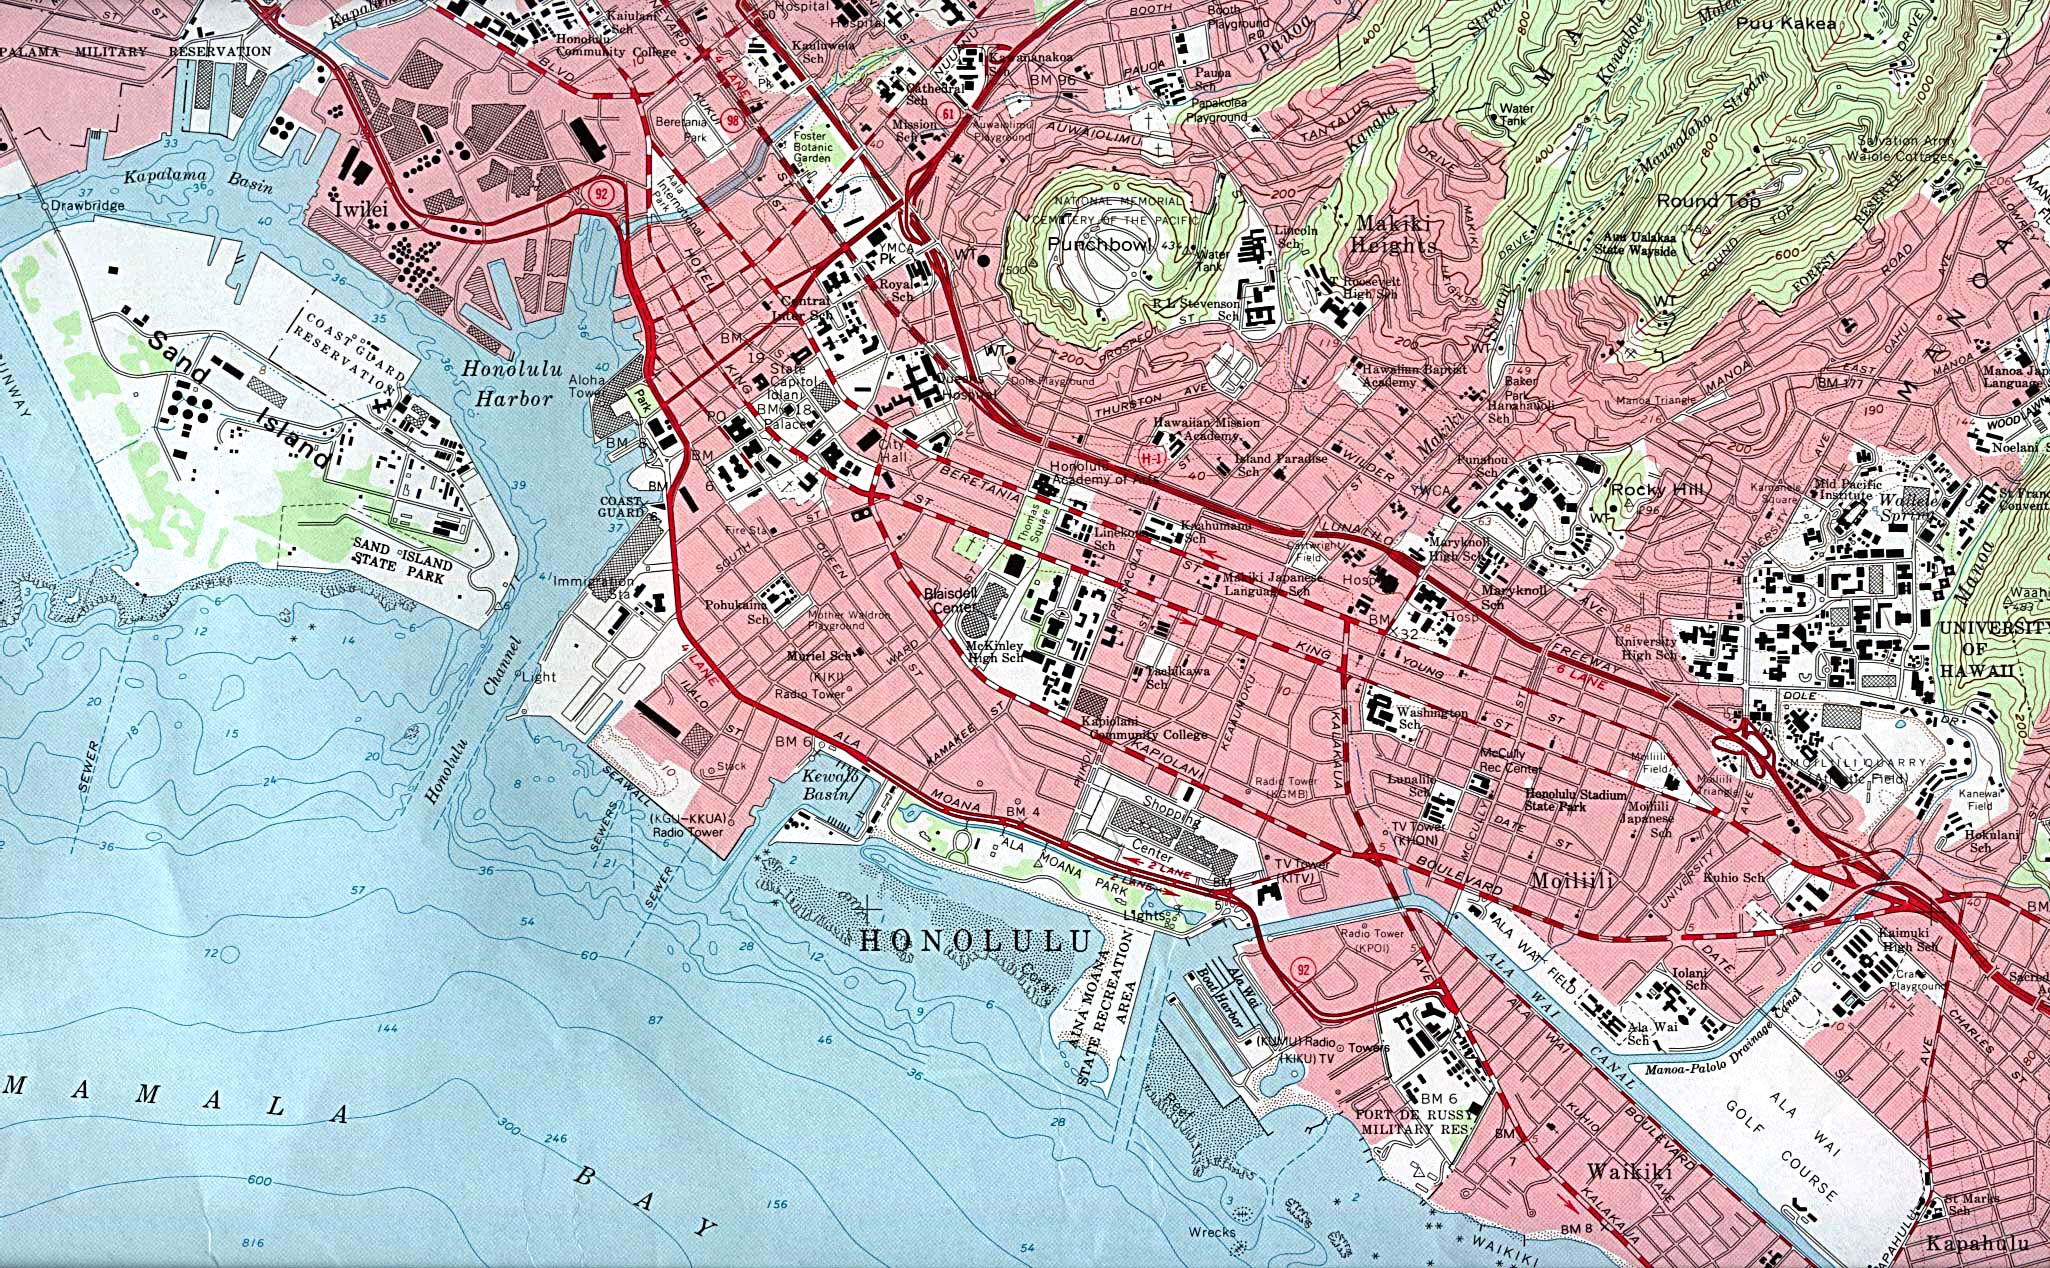 Honolulu Central Topographic Map, Hawaii, United States